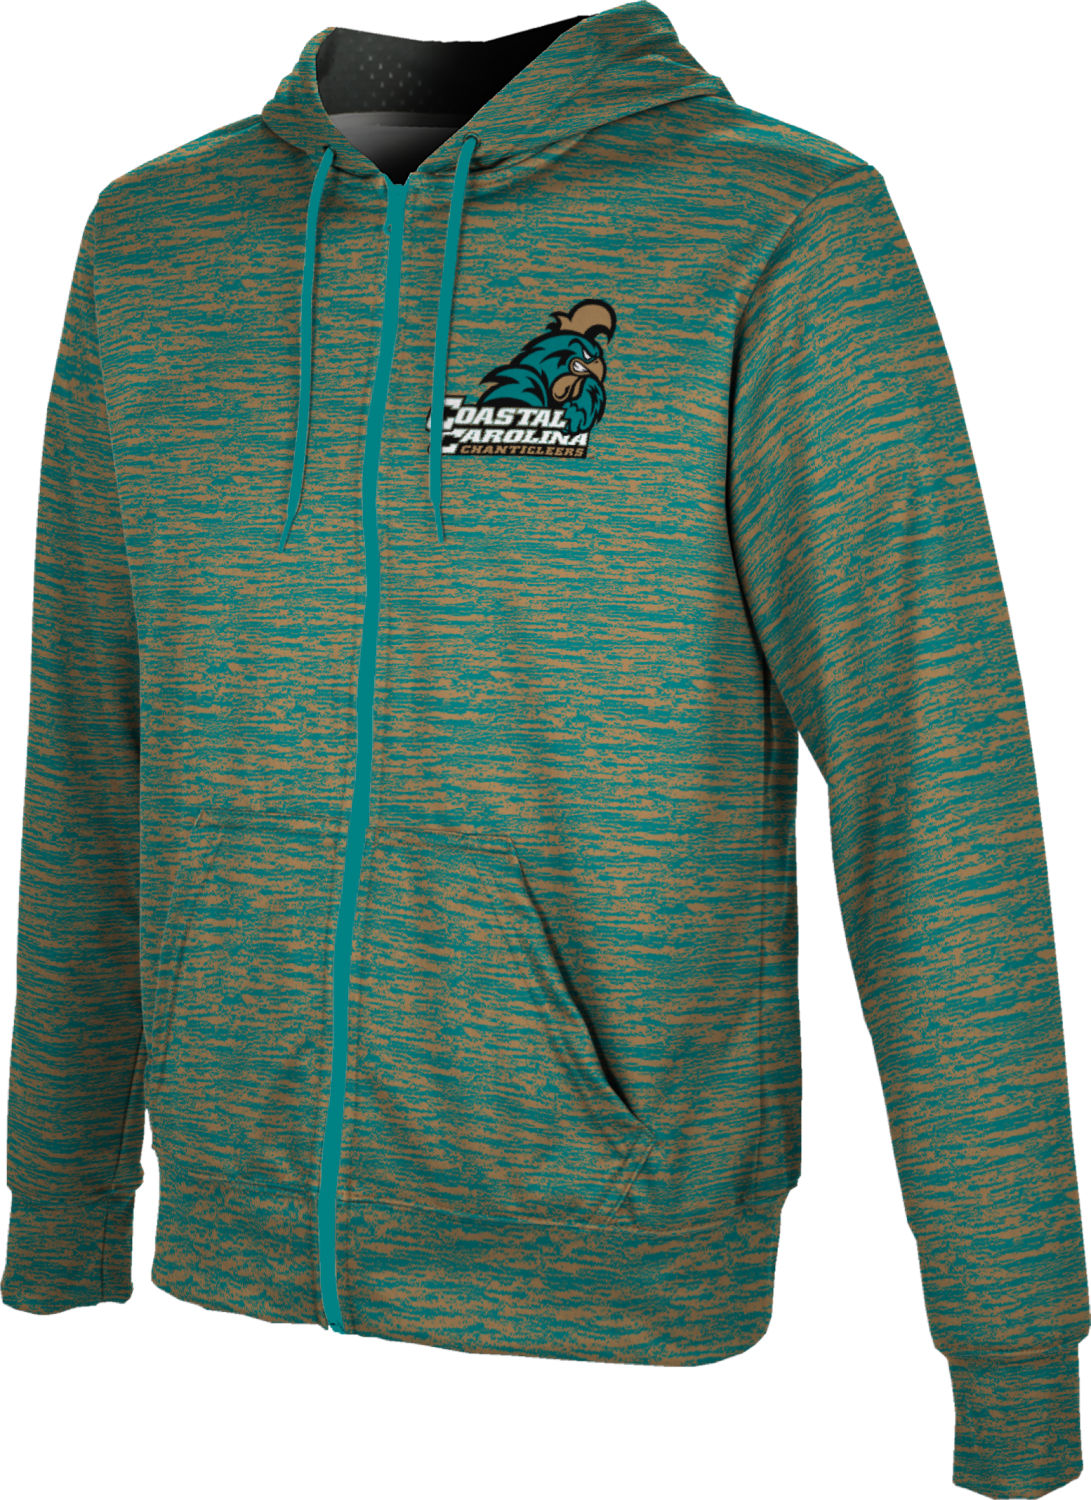 ProSphere Boys' Coastal Carolina University Brushed Fullzip Hoodie